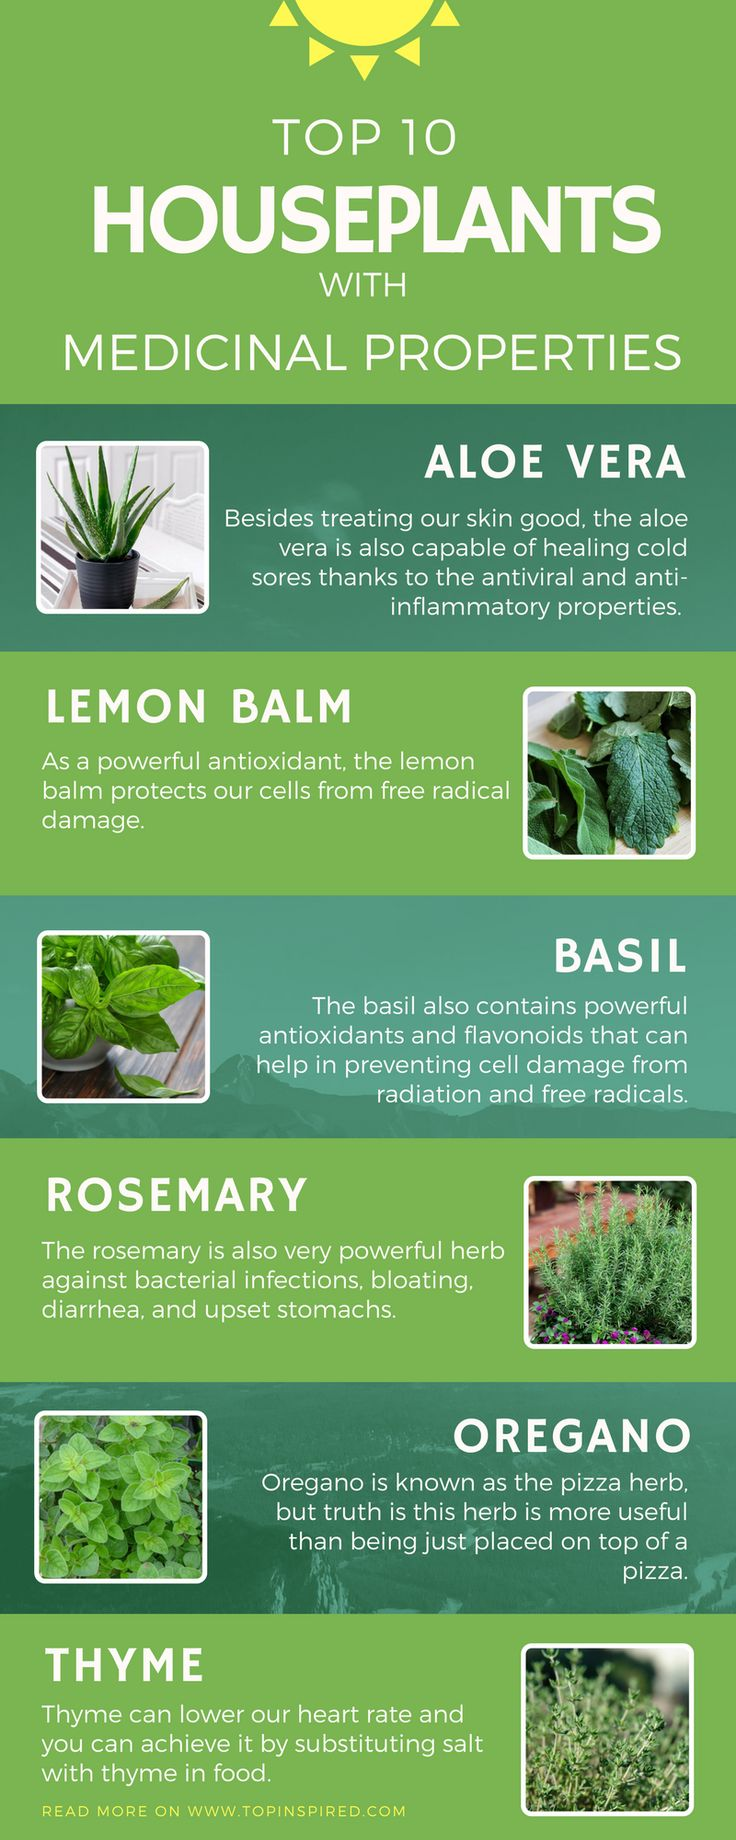 From aloe vera to oregano, we present you ten plants that not only we'll be the perfect little detail to any room, but you can later use them for various medicinal reasons (don't use anything before consulting a doctor). Wondering how these plants can help you? Read along.